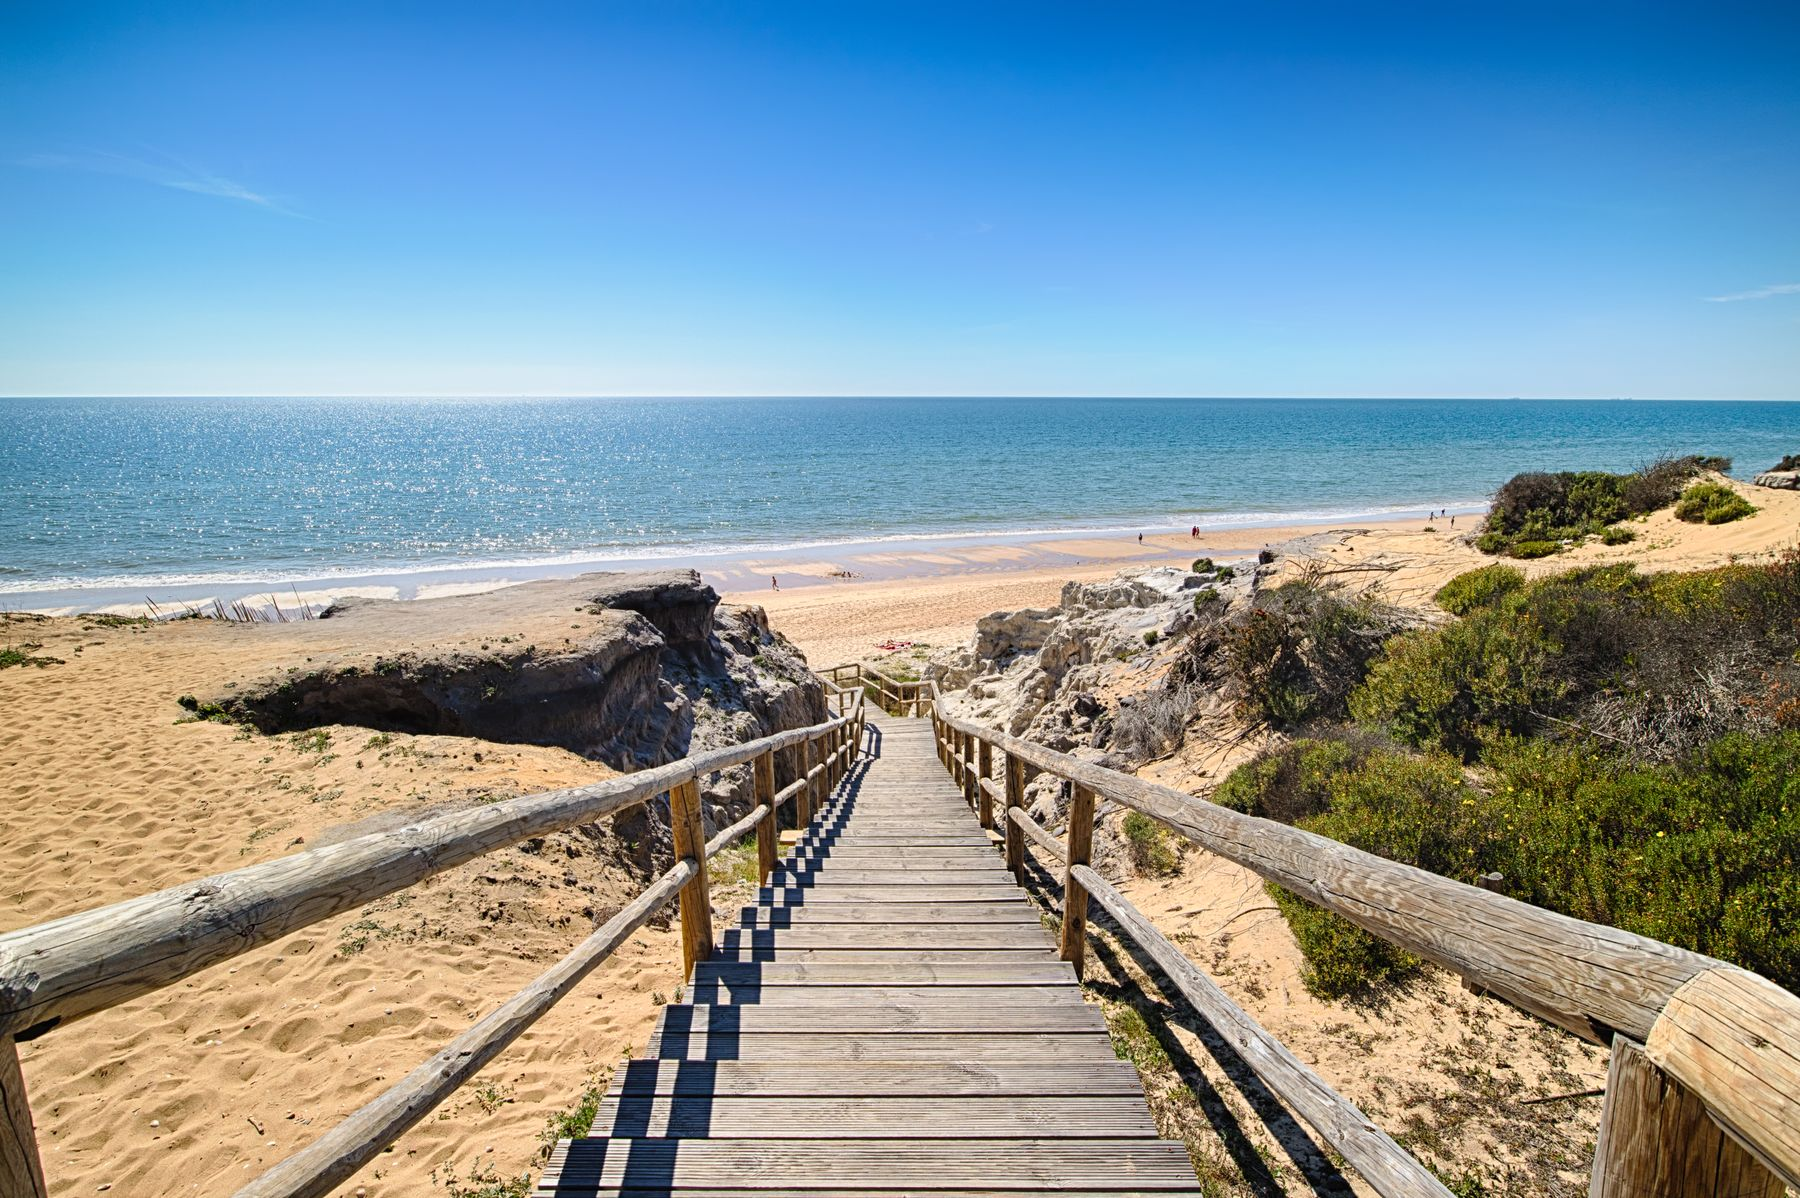 Wooden steps leading down to a quiet, sandy beach with the clear blue sky and sea in the background.